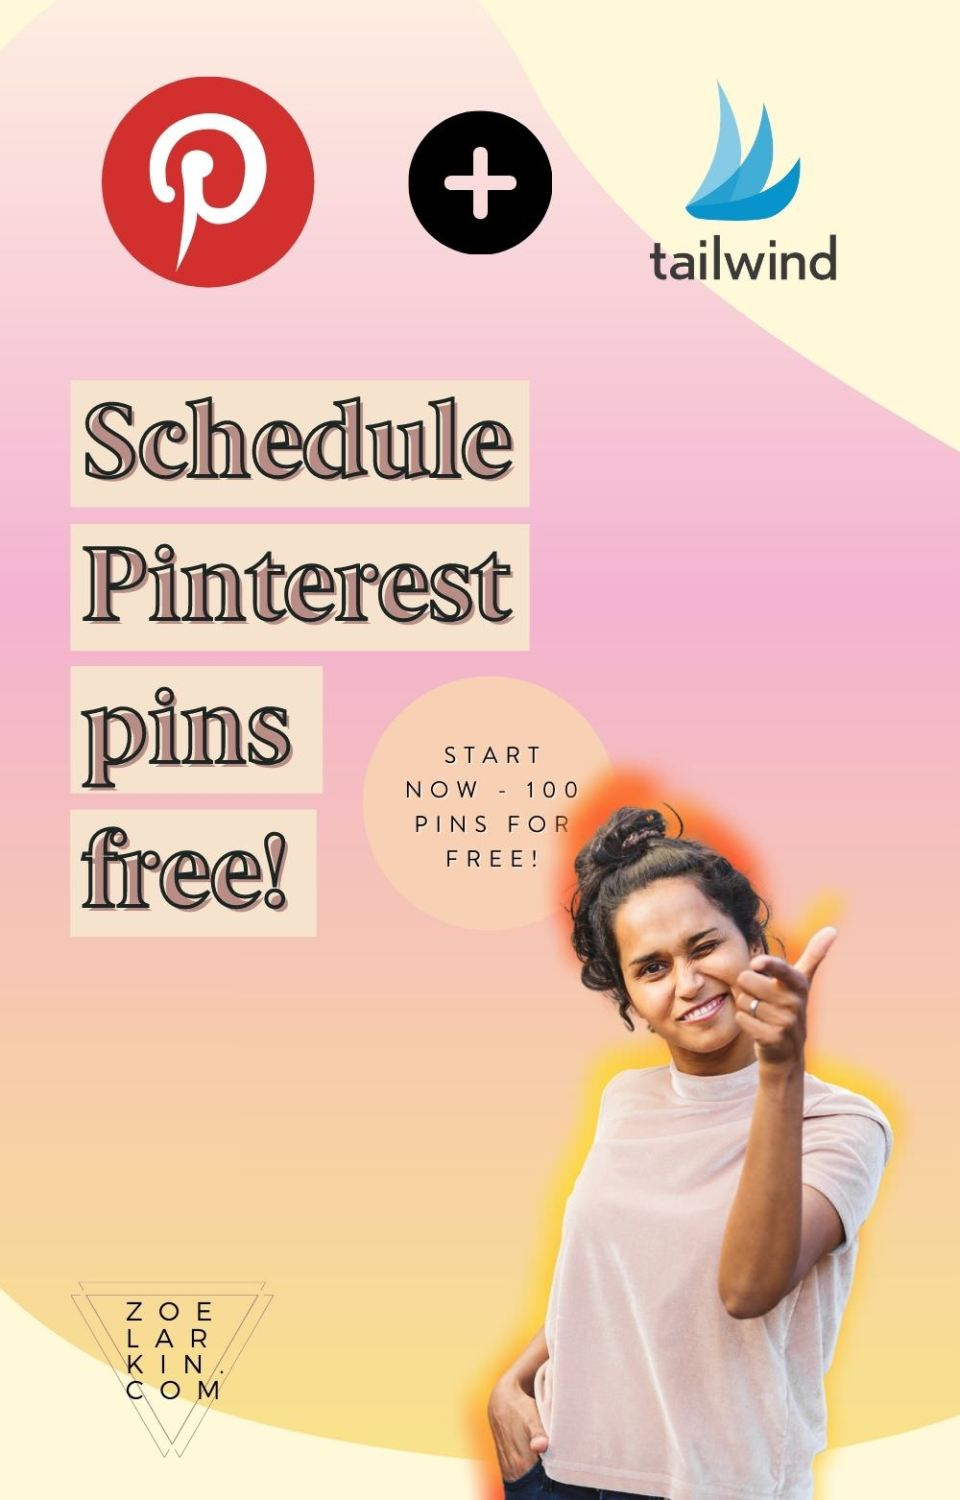 New to Pinterest marketing? As you dive further into using Pinterest for your business or blog, you'll want to speed up your workflows by scheduling out your Pinterest pins well in advance.  Whether you're a blogger, biz owner, influencer or content creator, you need to be consistent with a steady flow of high-quality pins from the web. Use Pinterest's own native scheduler or Tailwind for truly friction-free pinning! The best part is you can get started with 100 pins schedules FREE! #tailwind